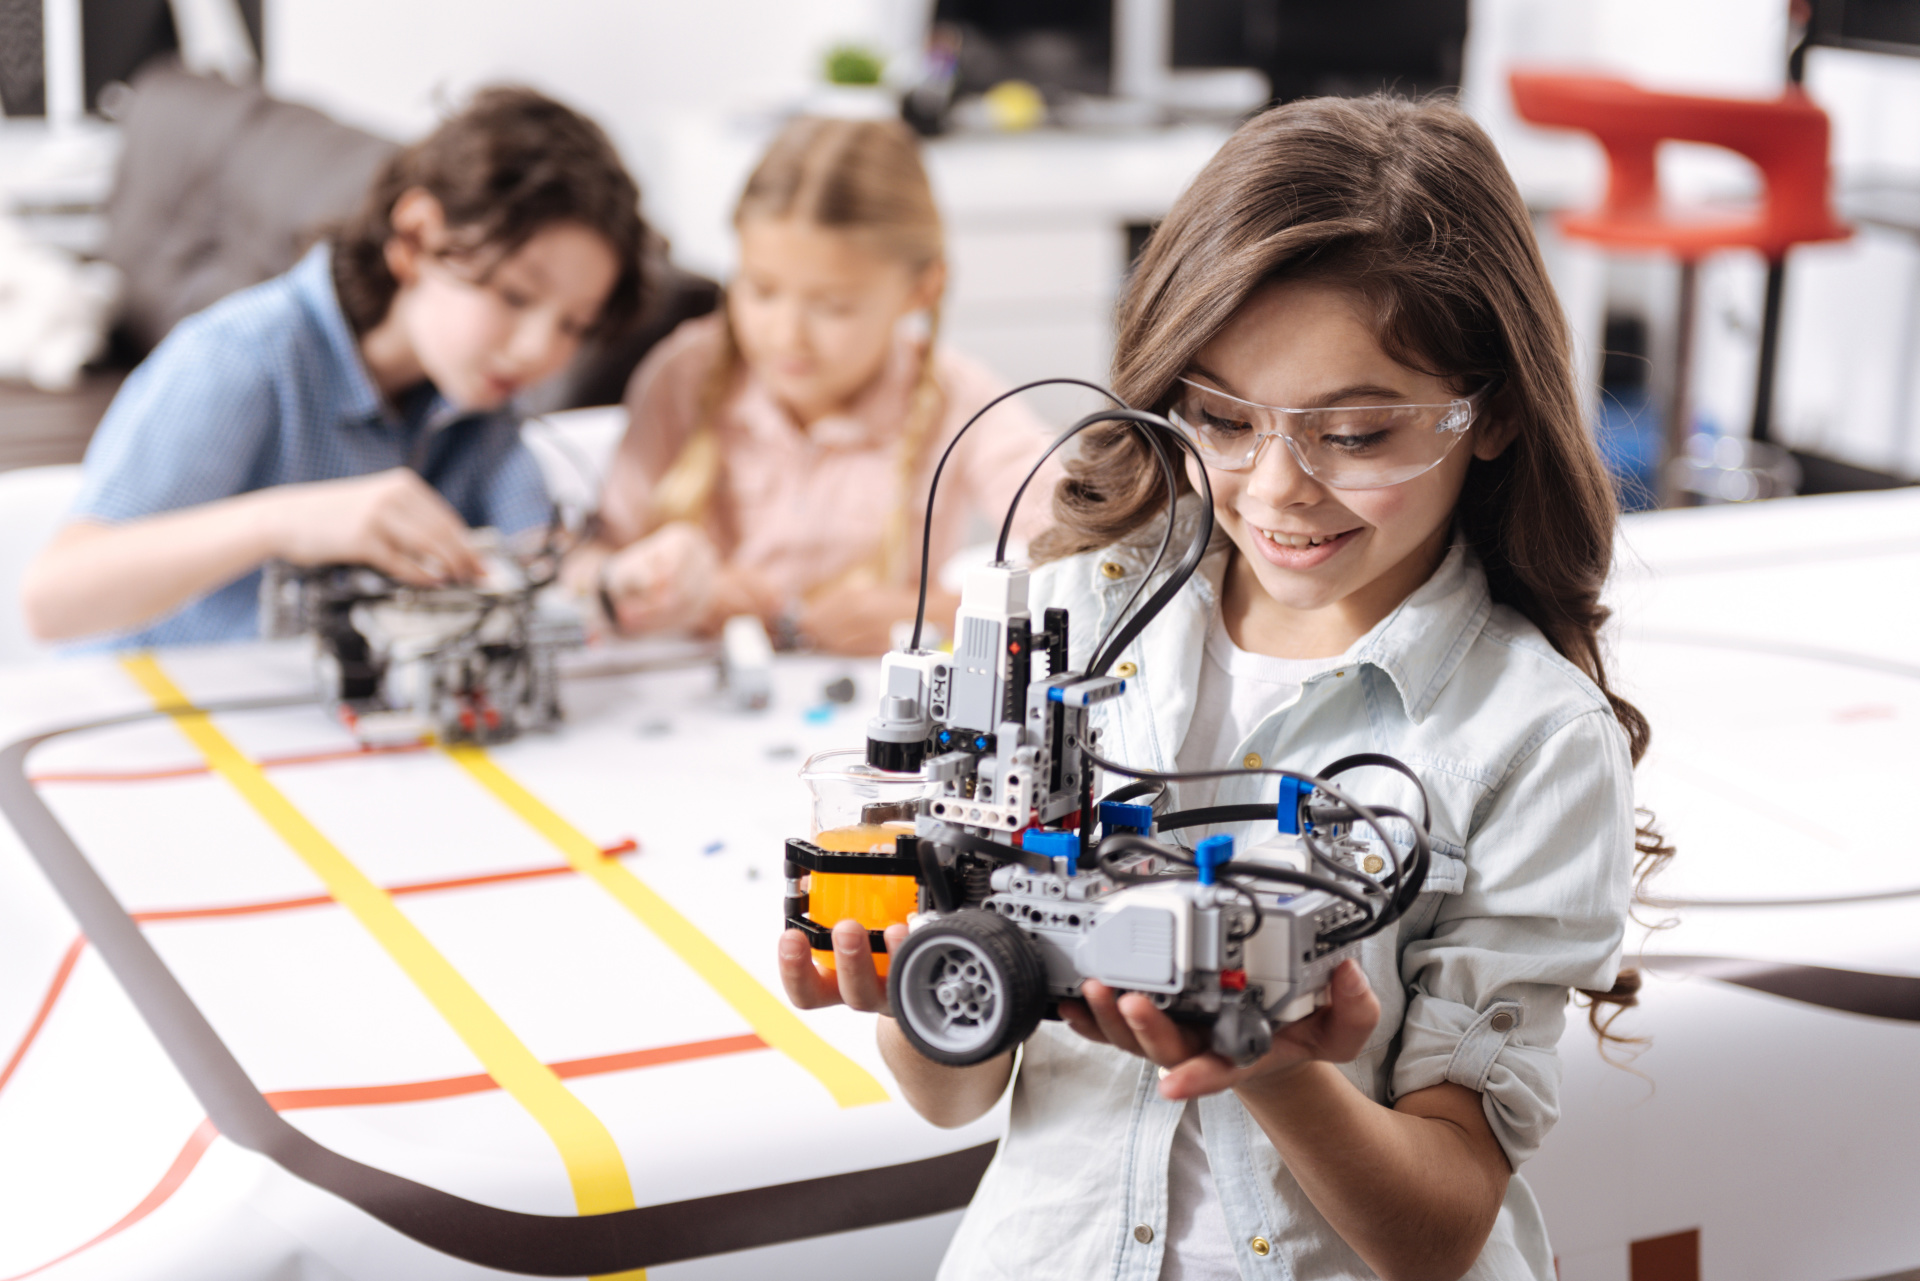 Rbotics for Kids | STEM Builders ROBOTICS & Math Learning Center